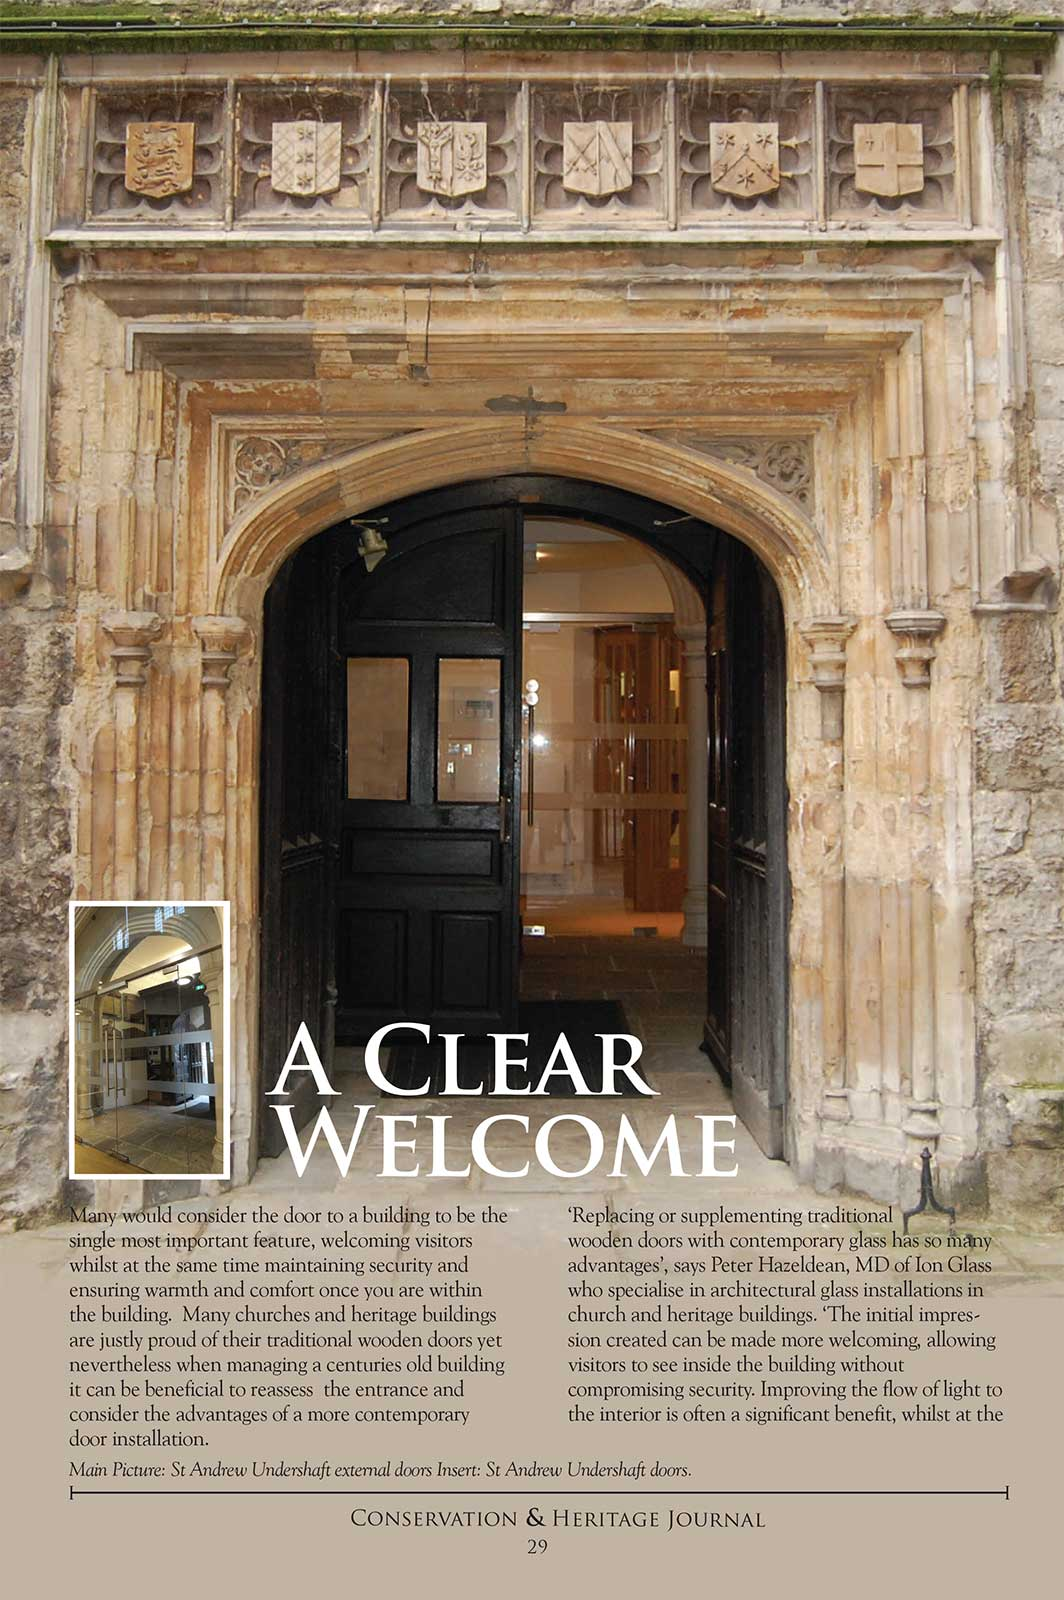 A Clear Welcome - Conservation & Heritage Journal